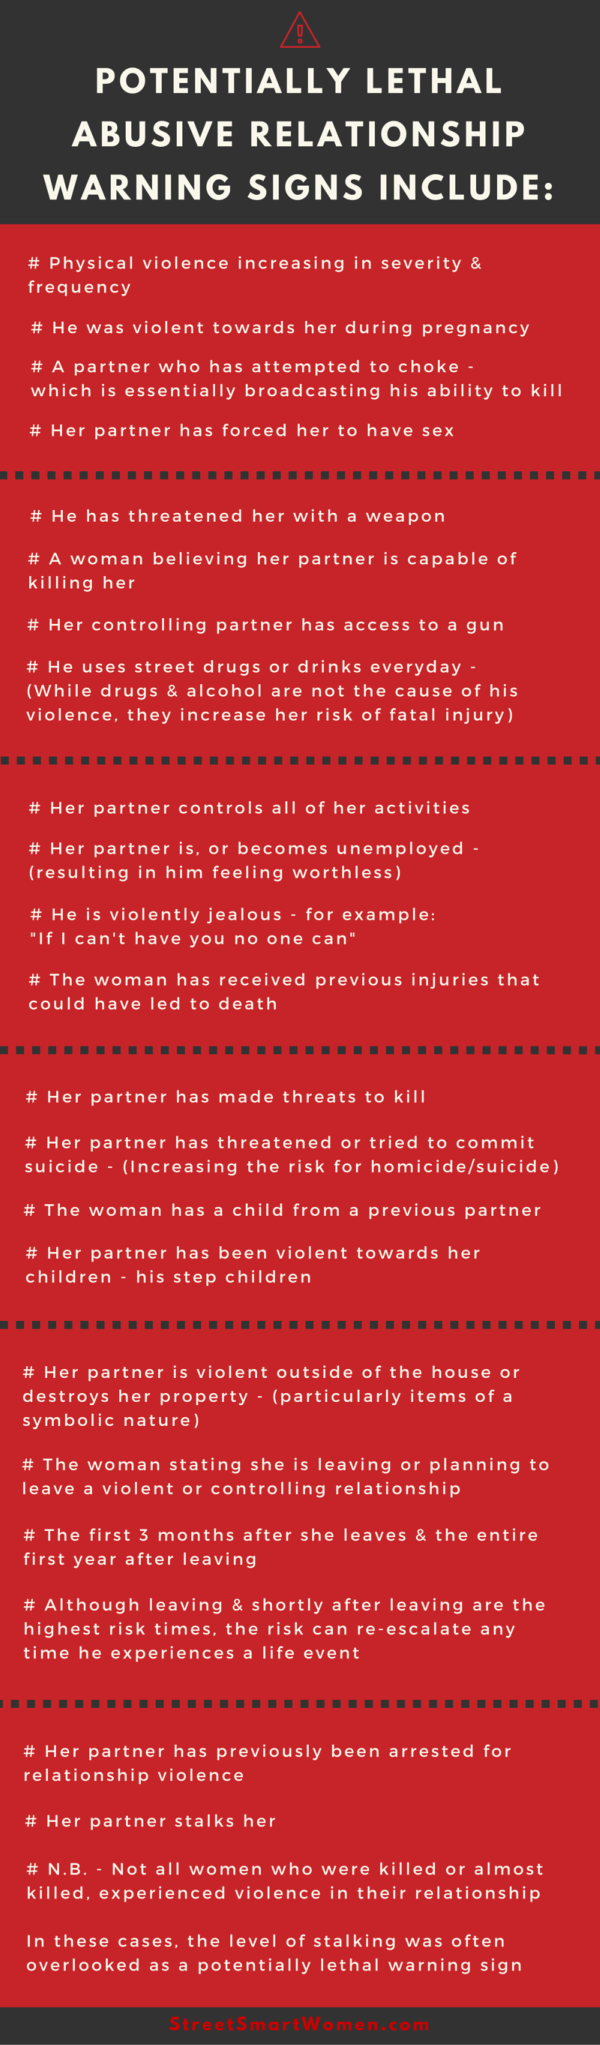 Relationship abuse & intimate partner homicide warning signs